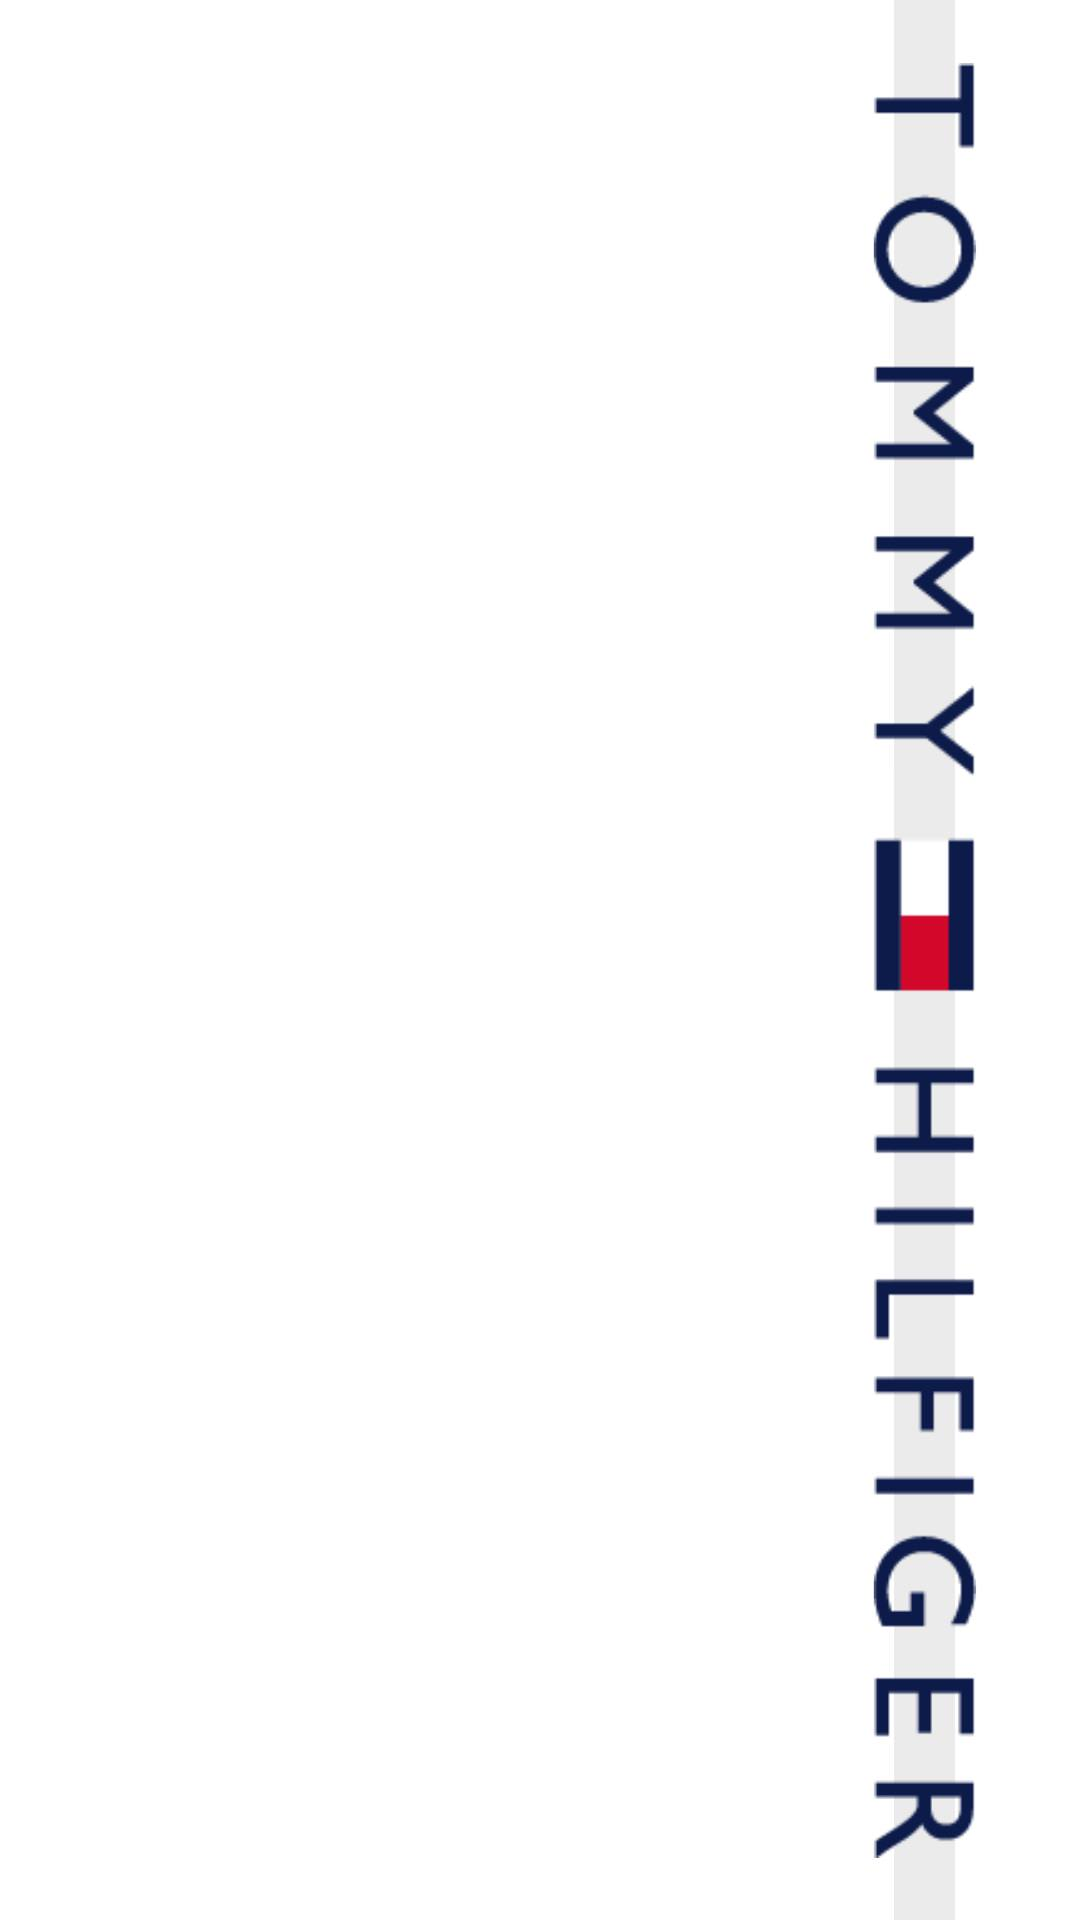 tommyhilfiger17 - TOMMY HILFIGER/トミー・ヒルフィガーの高画質スマホ壁紙20枚 [iPhone&Androidに対応]